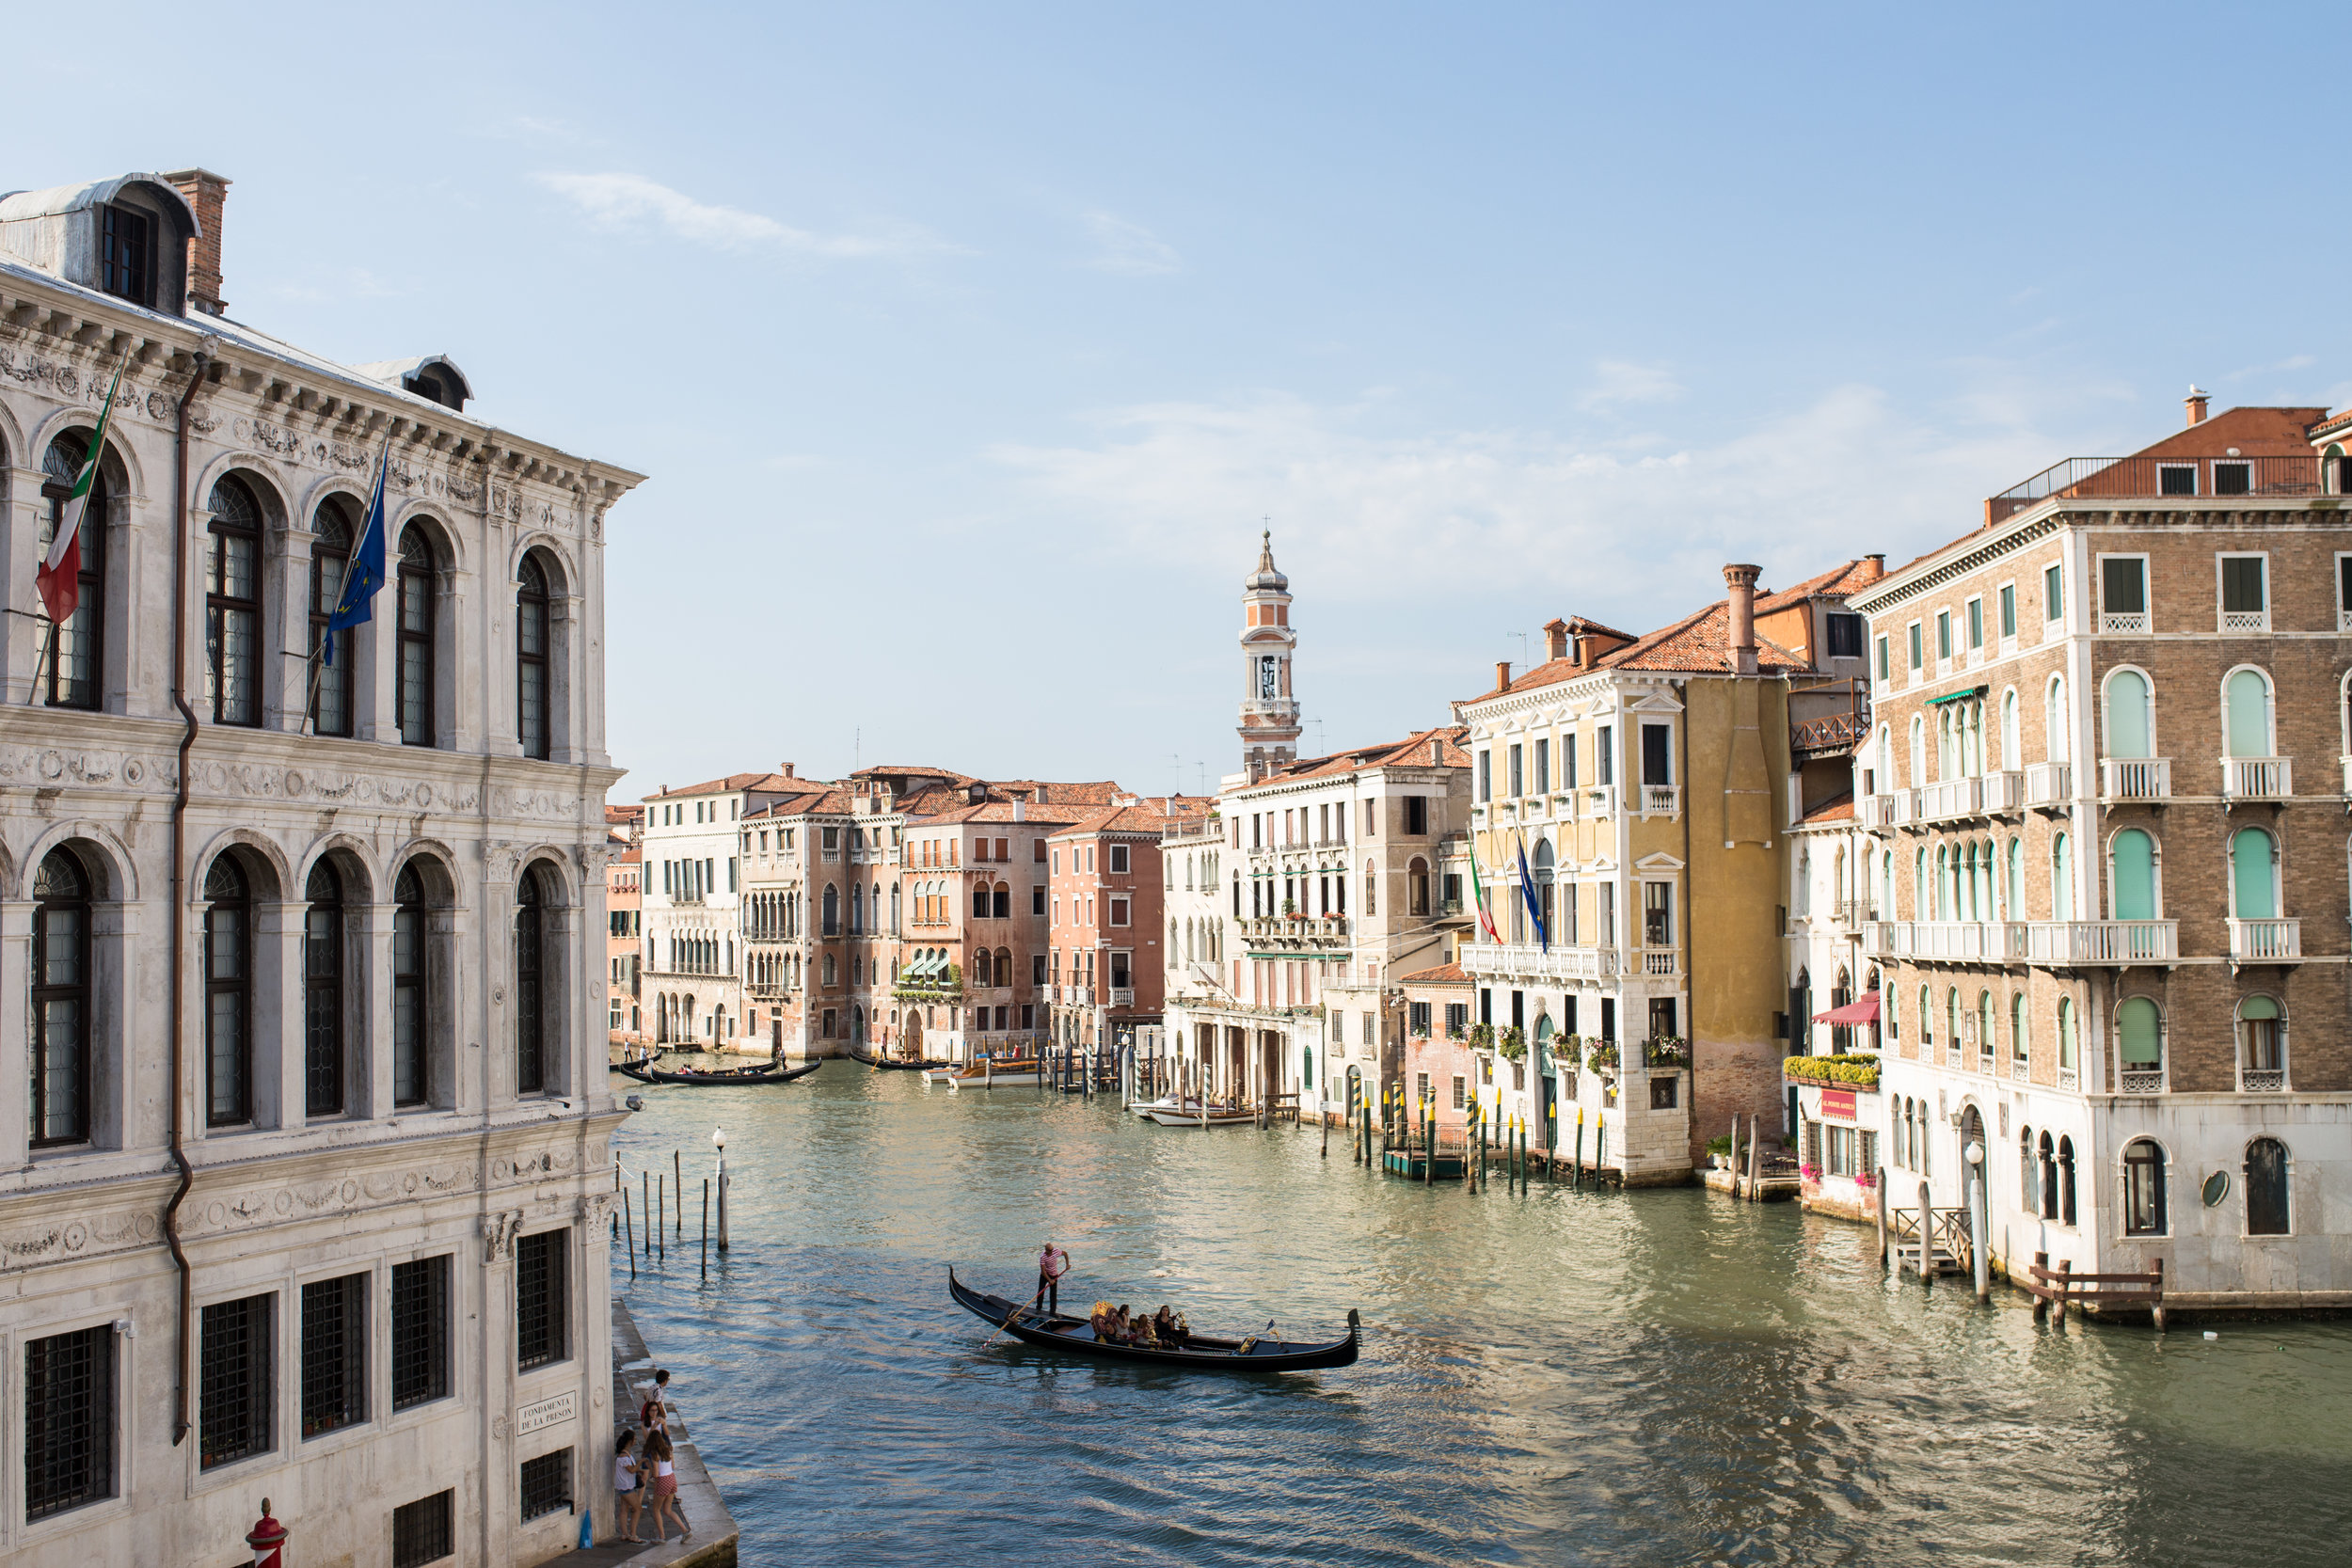 The Grand Canal, as seen from the Rialto Bridge